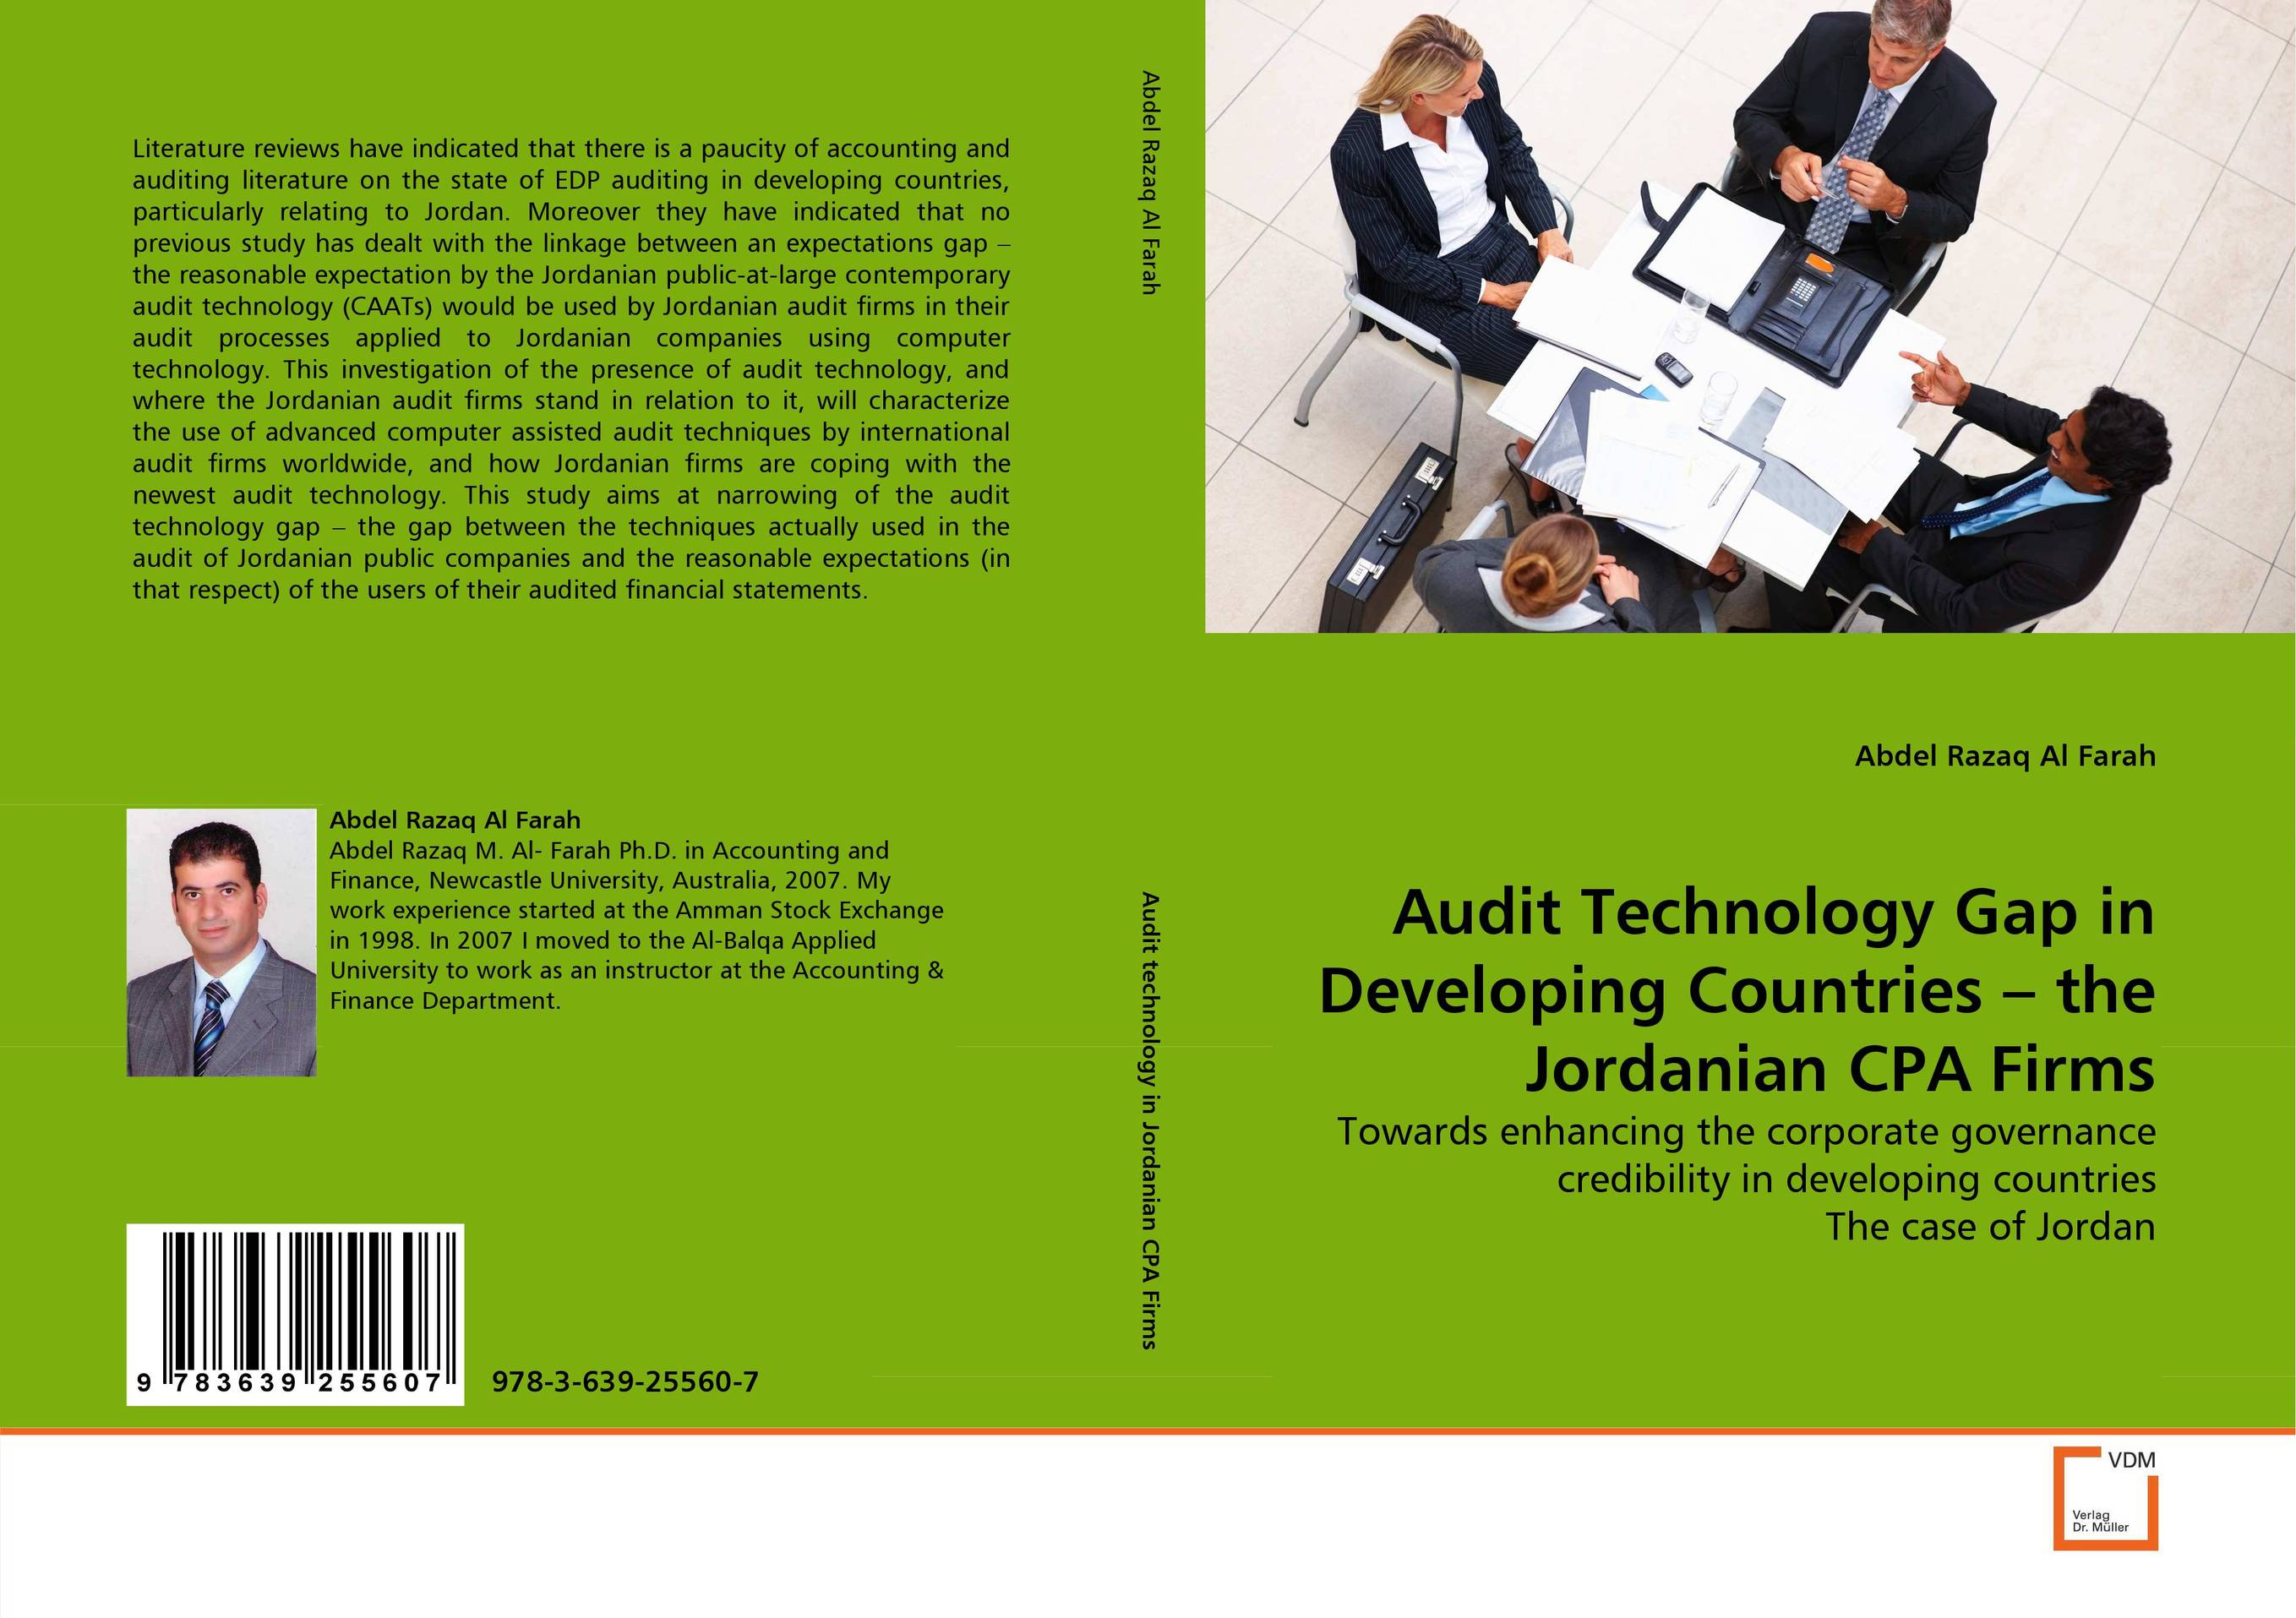 Audit Technology Gap in Developing Countries – the Jordanian CPA Firms